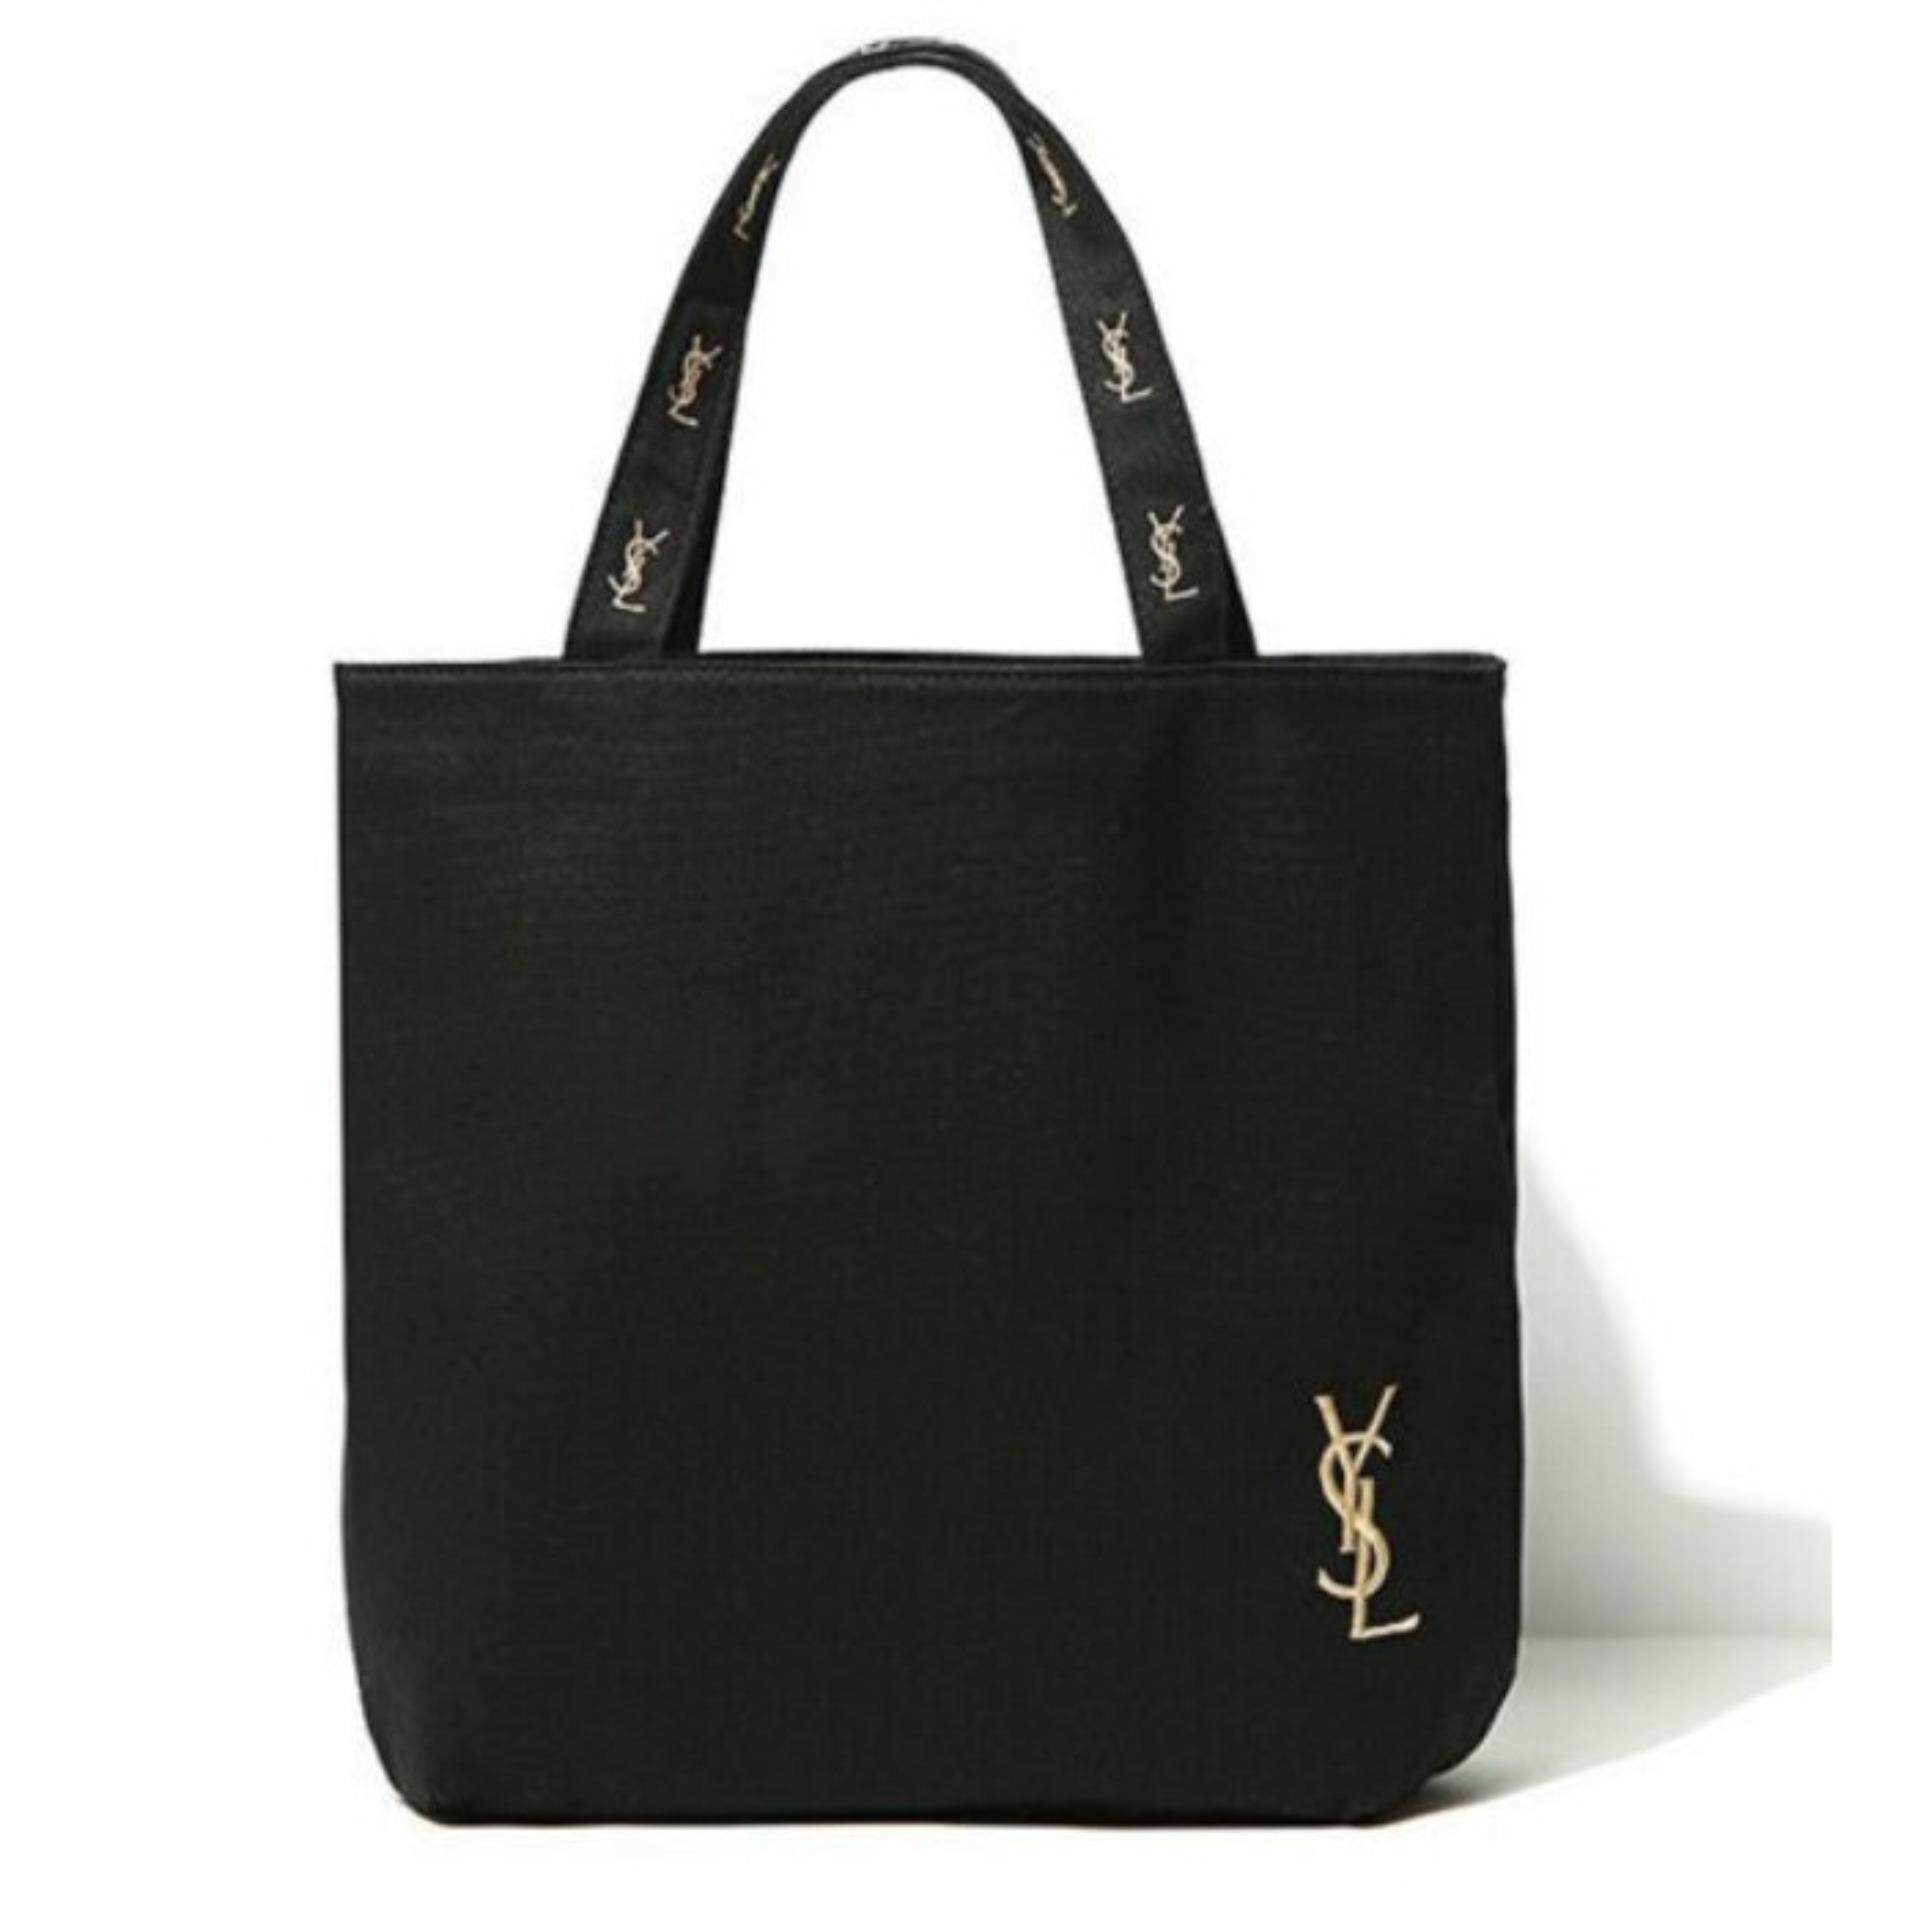 YSL Canvas Tote Bag - Clearance Sale- Yves Saint Laurent 912bdd6ff3663